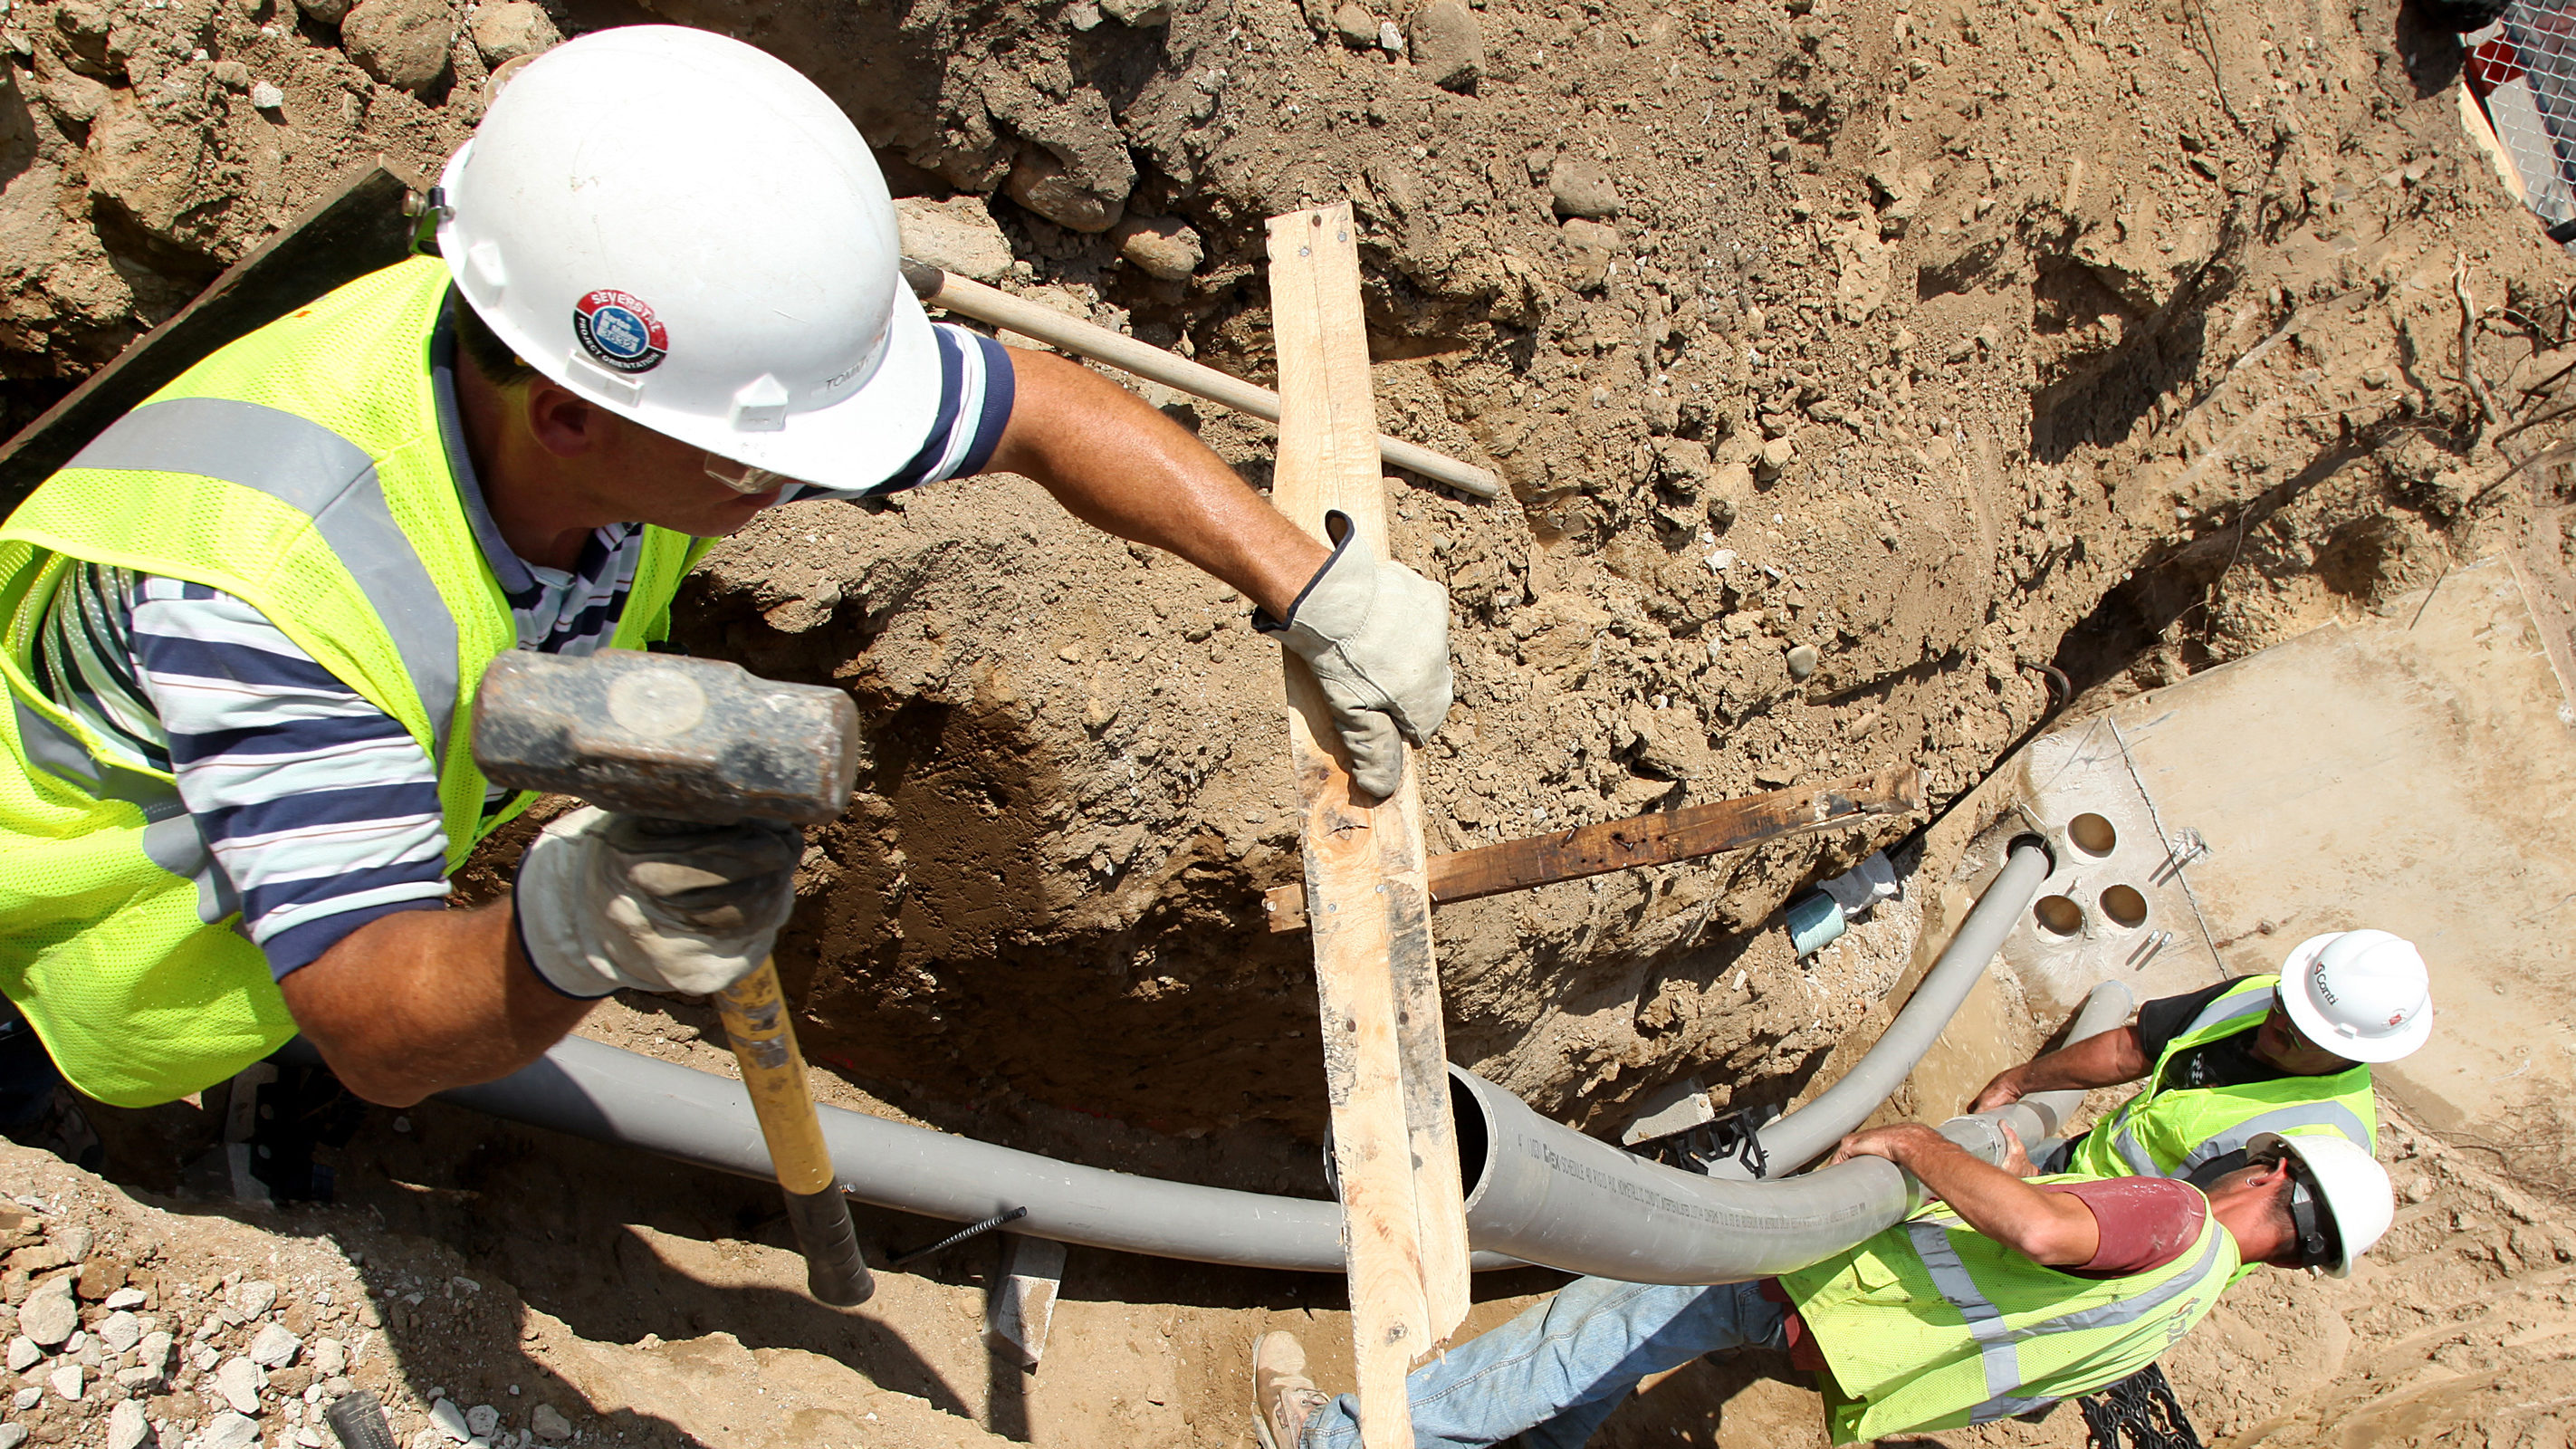 Construction workers installing pipes as part of the G.G. Brown addition. Photo: Marcin Szczepanski/Michigan Engineering